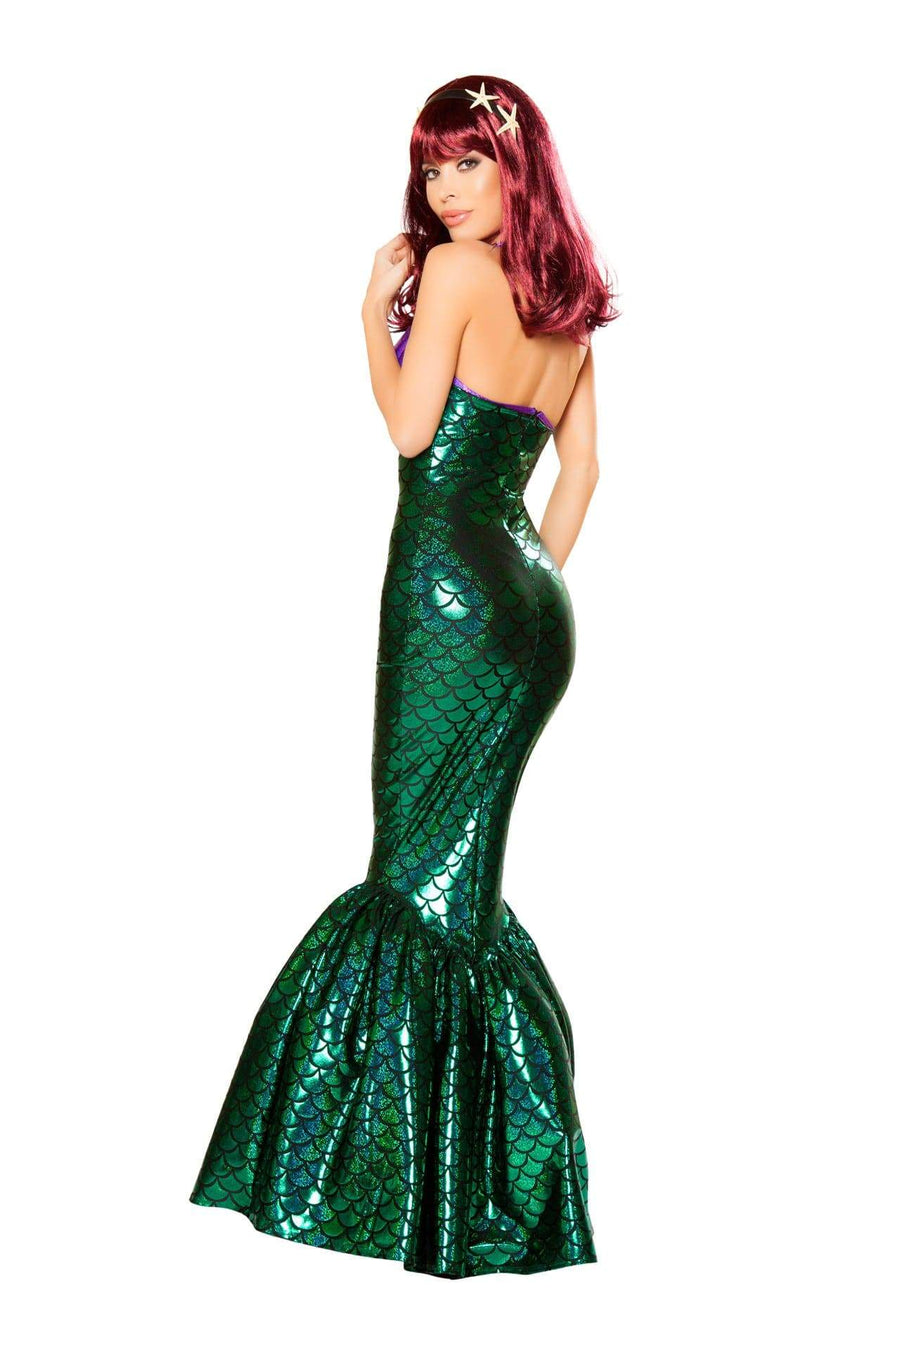 Roma MERMAID TEMPTRESS COSTUME Apparel & Accessories > Costumes & Accessories > Costumes